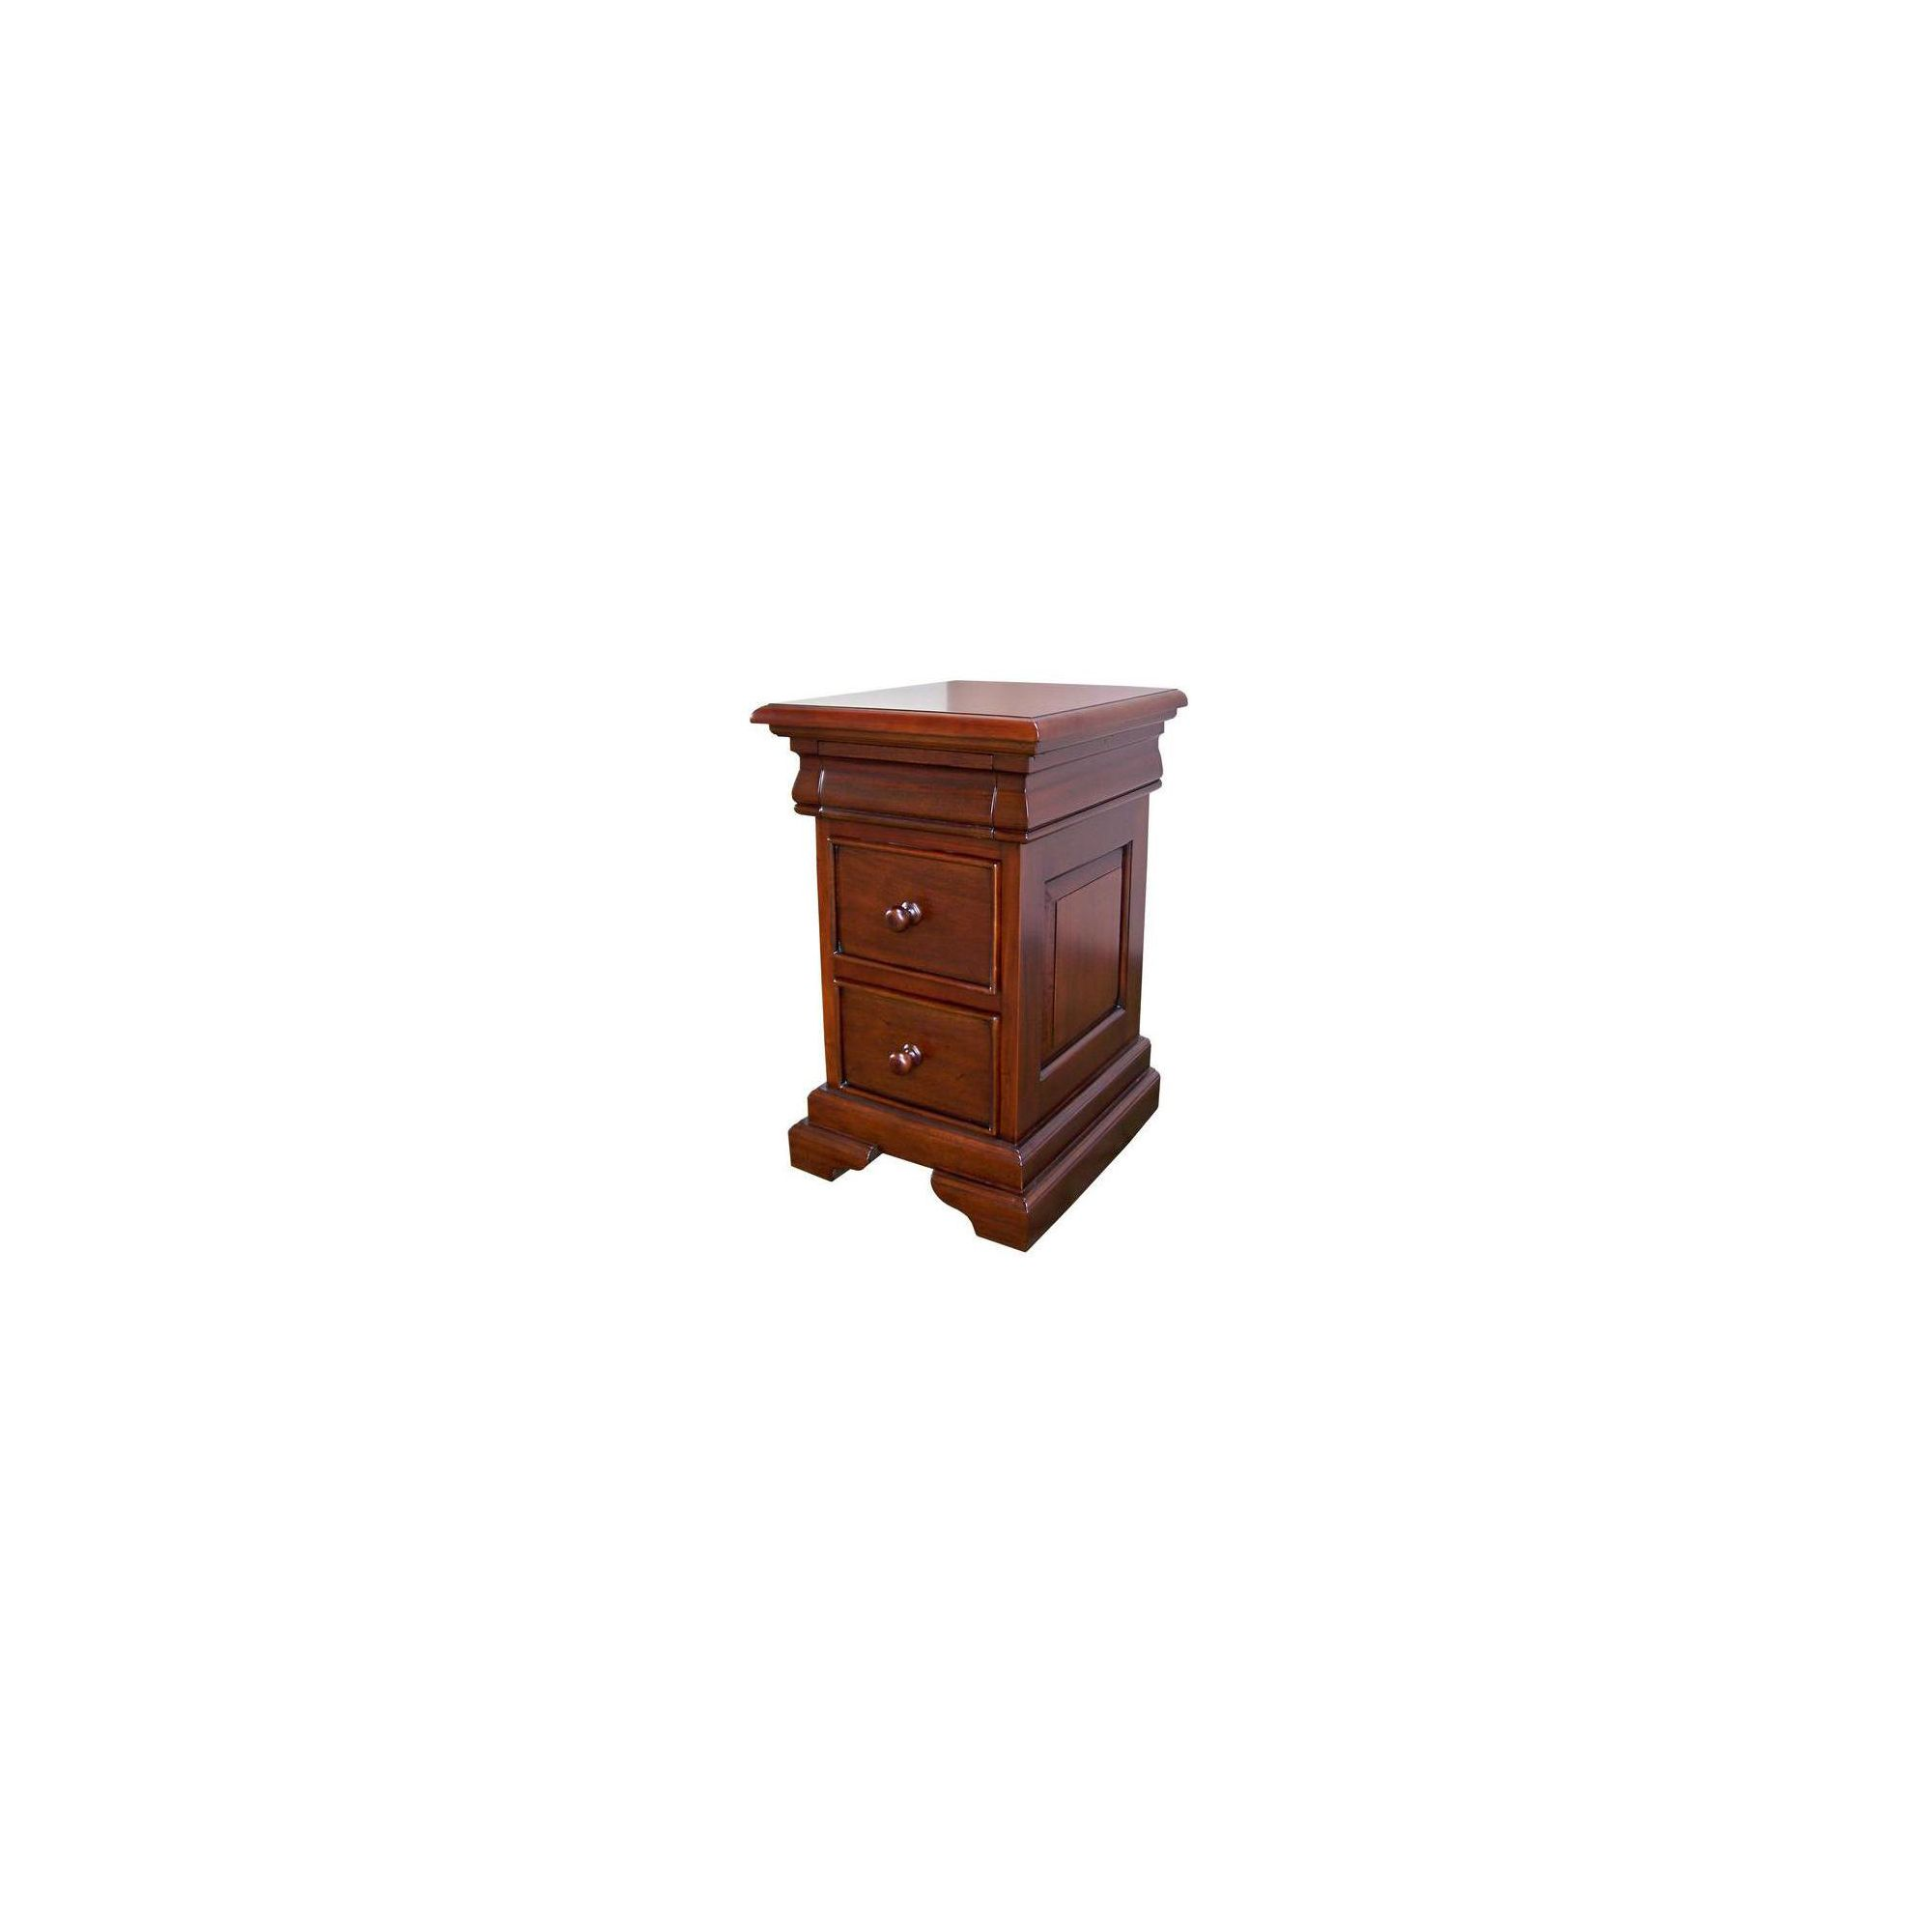 Lock stock and barrel Louis Philippe Sleigh Style 2-3 Drawer Bedside in Mahogany - Antique White at Tescos Direct